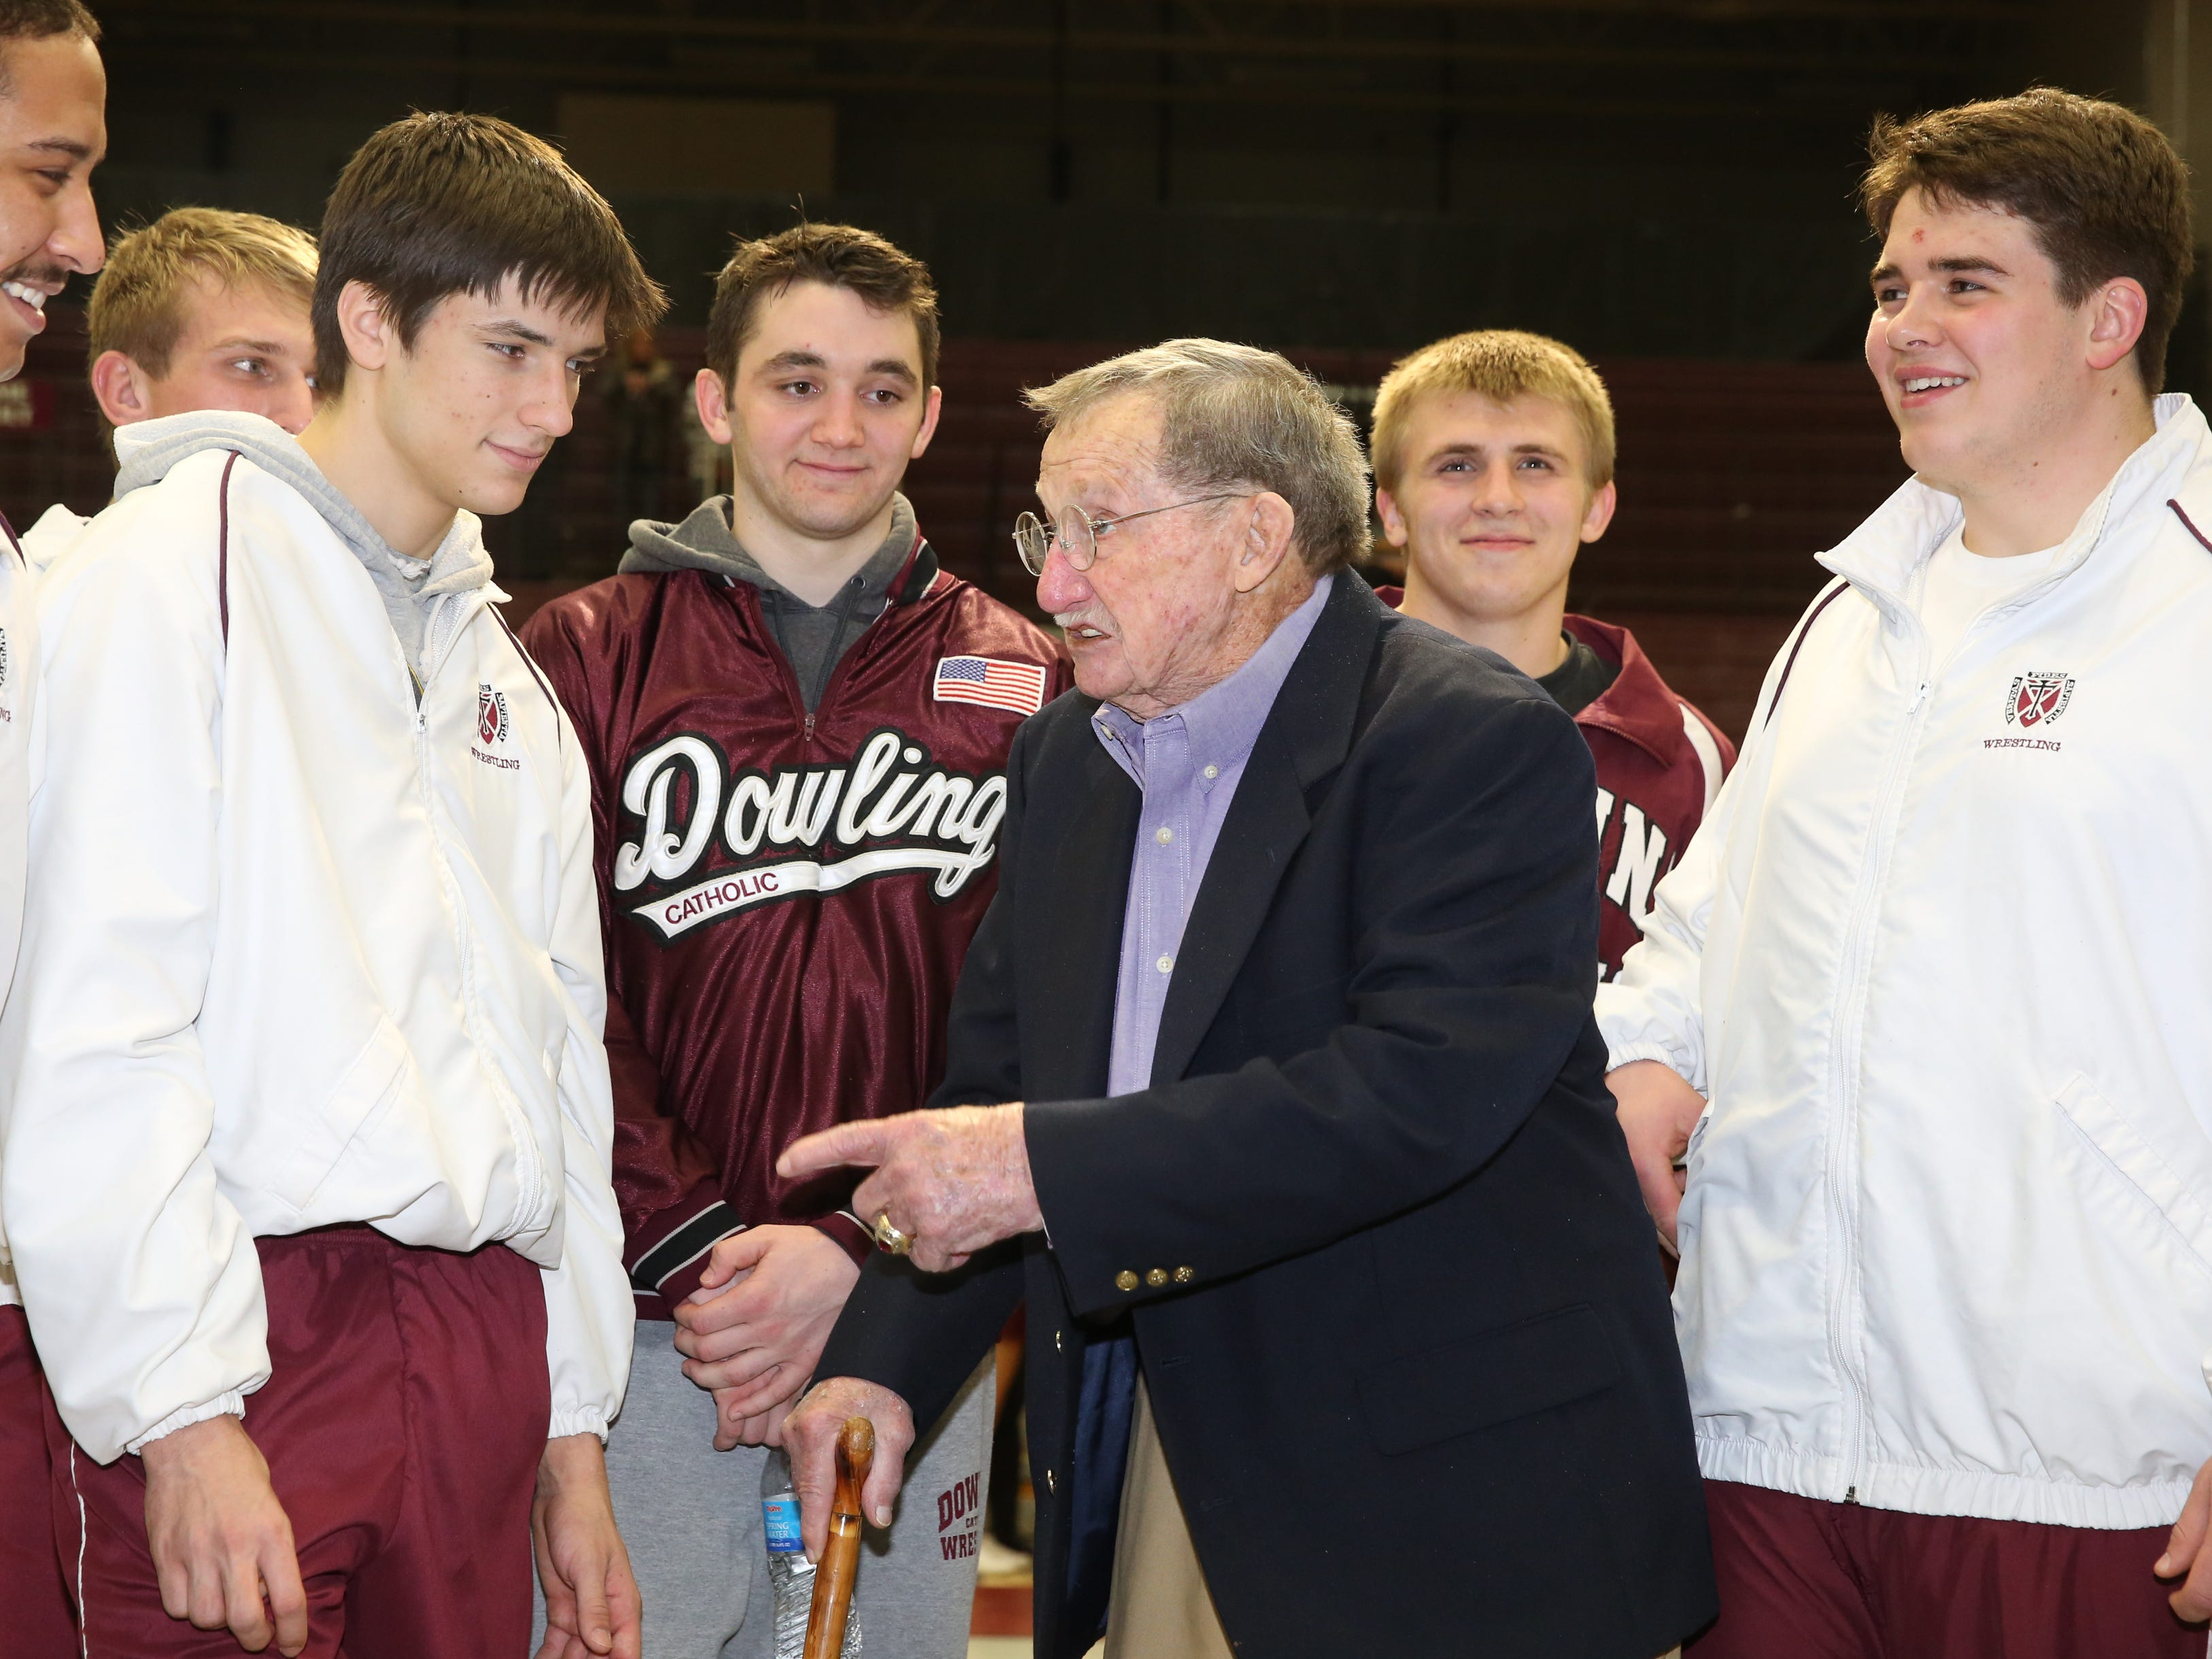 From 2015: Legendary wrestling Bob Darrah was honored before the Dowling vs. Urbandale wrestling match held at Dowling Catholic High School. The wrestling room was dedicated in his honor. Darrah gives the Dowling wrestlers a few tips before the match.